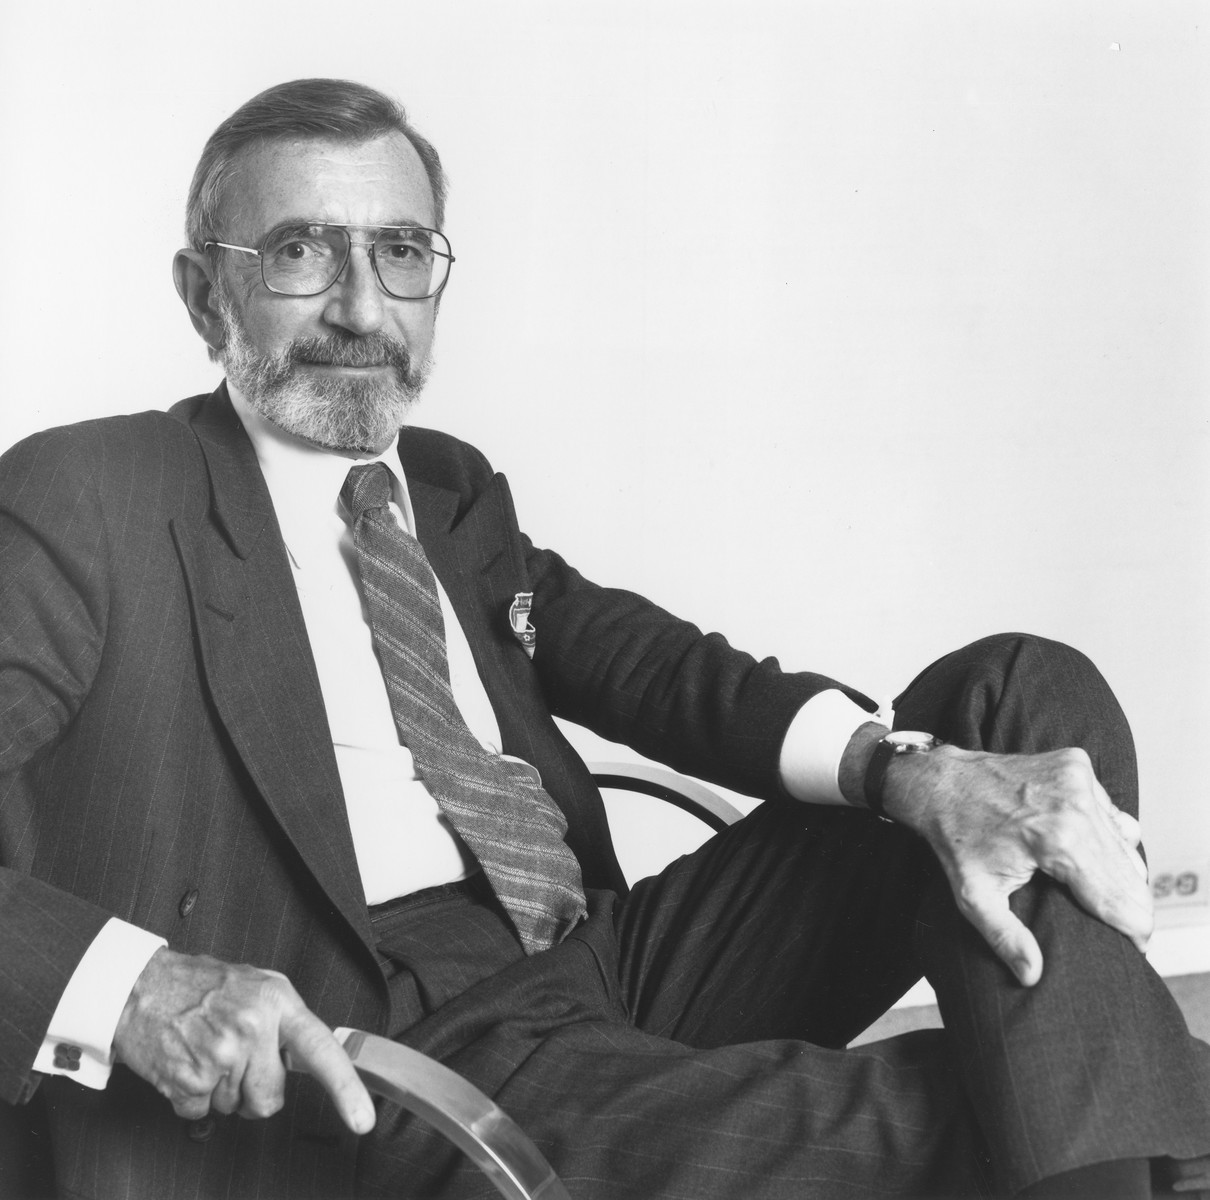 Portrait of James Ingo Freed, architect of the U.S. Holocaust Memorial Museum.  In 1992 Freed, a partner at Pei Cobb Freed & Partners in New York City, received the American Institute of Architects' inaugural Thomas Jefferson Award for Public Architecture.